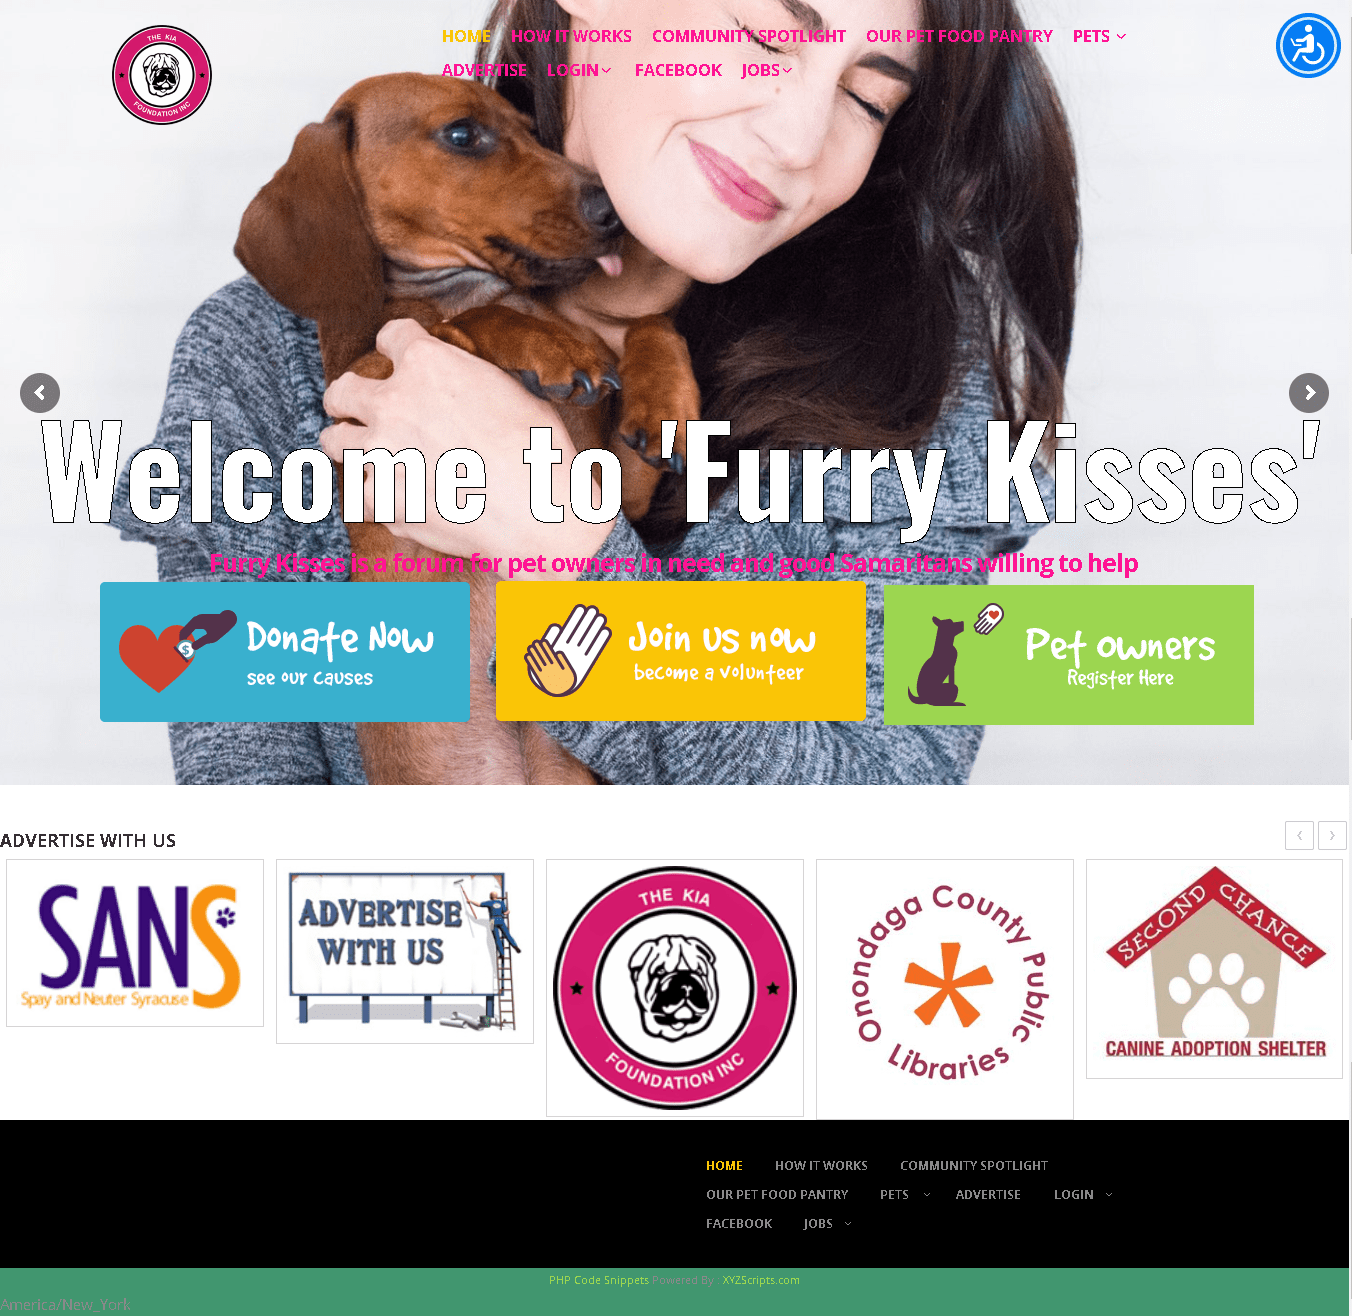 Helping Pets Their Owners Transportation Services FurryKisses Desktop